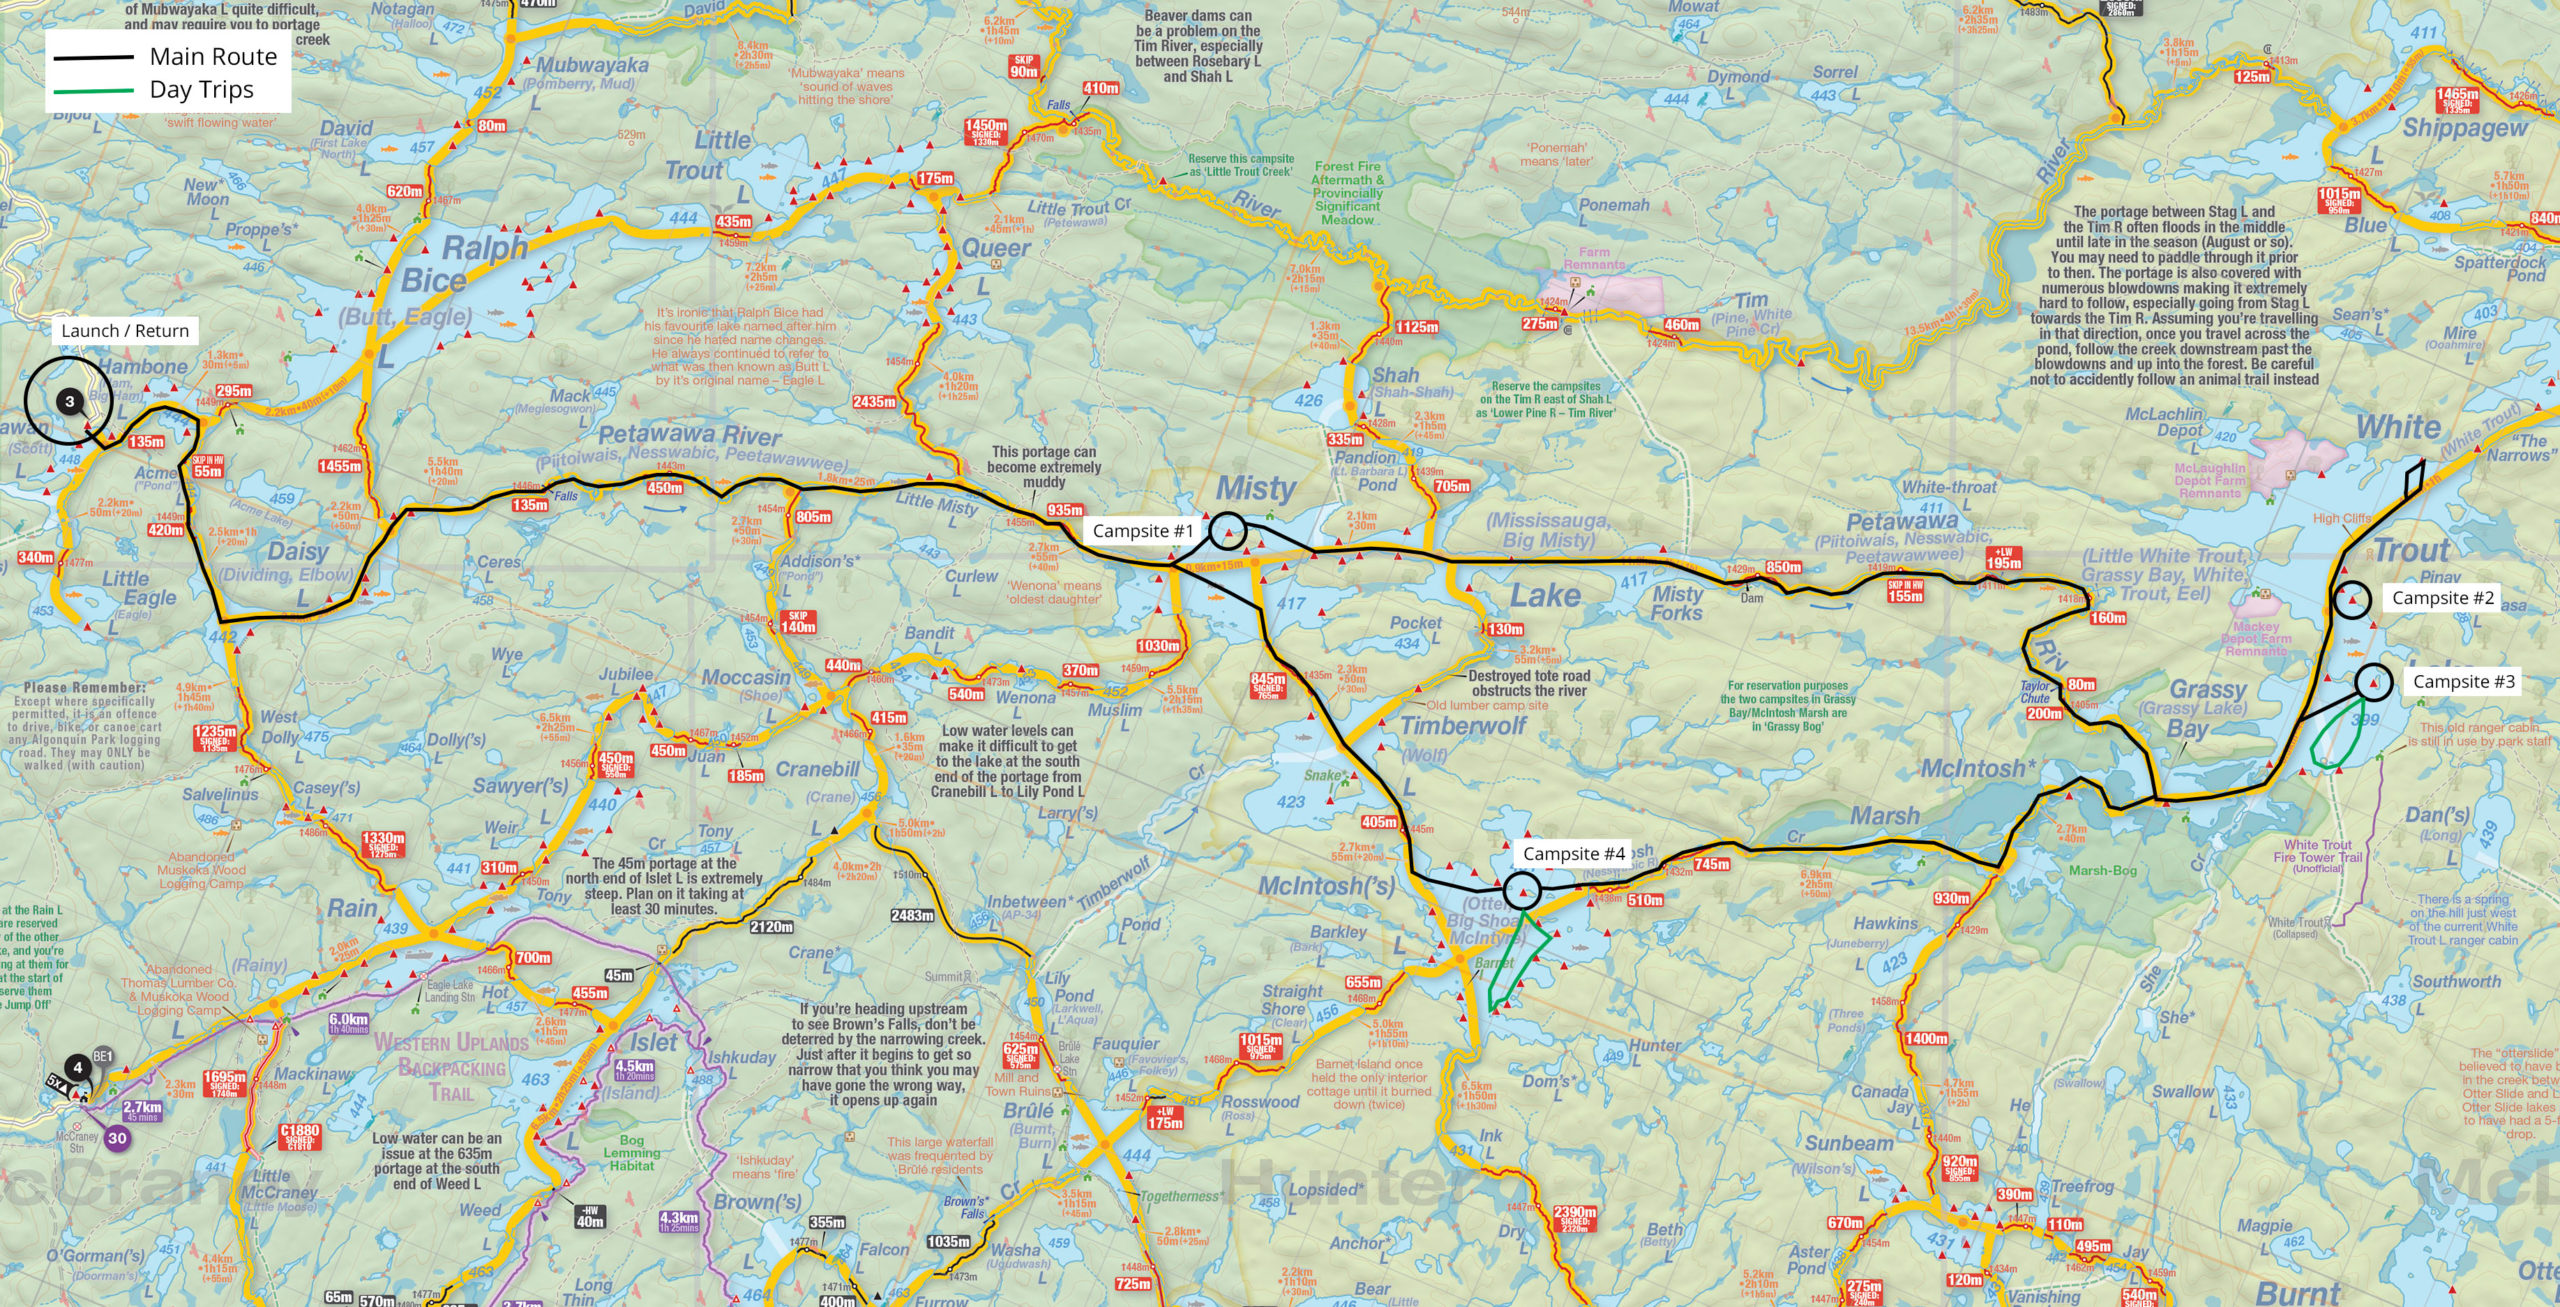 Map of trip details and campsites for six days solo in Algonquin canoe trip